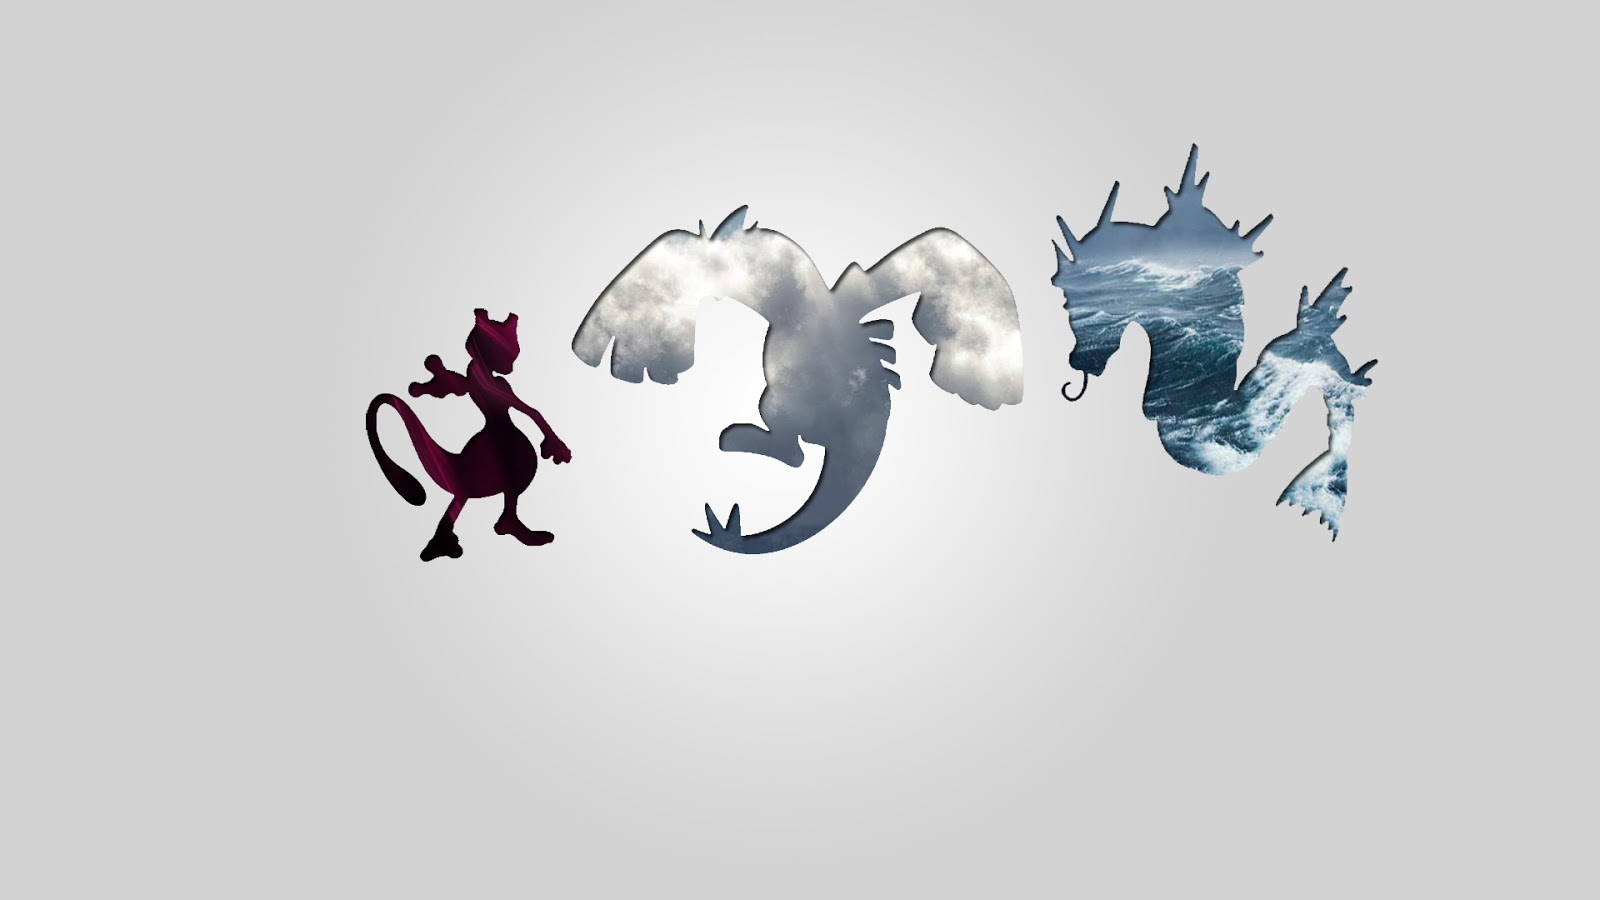 Theartistical Create Your Own Wallpaper 3 Pokemon